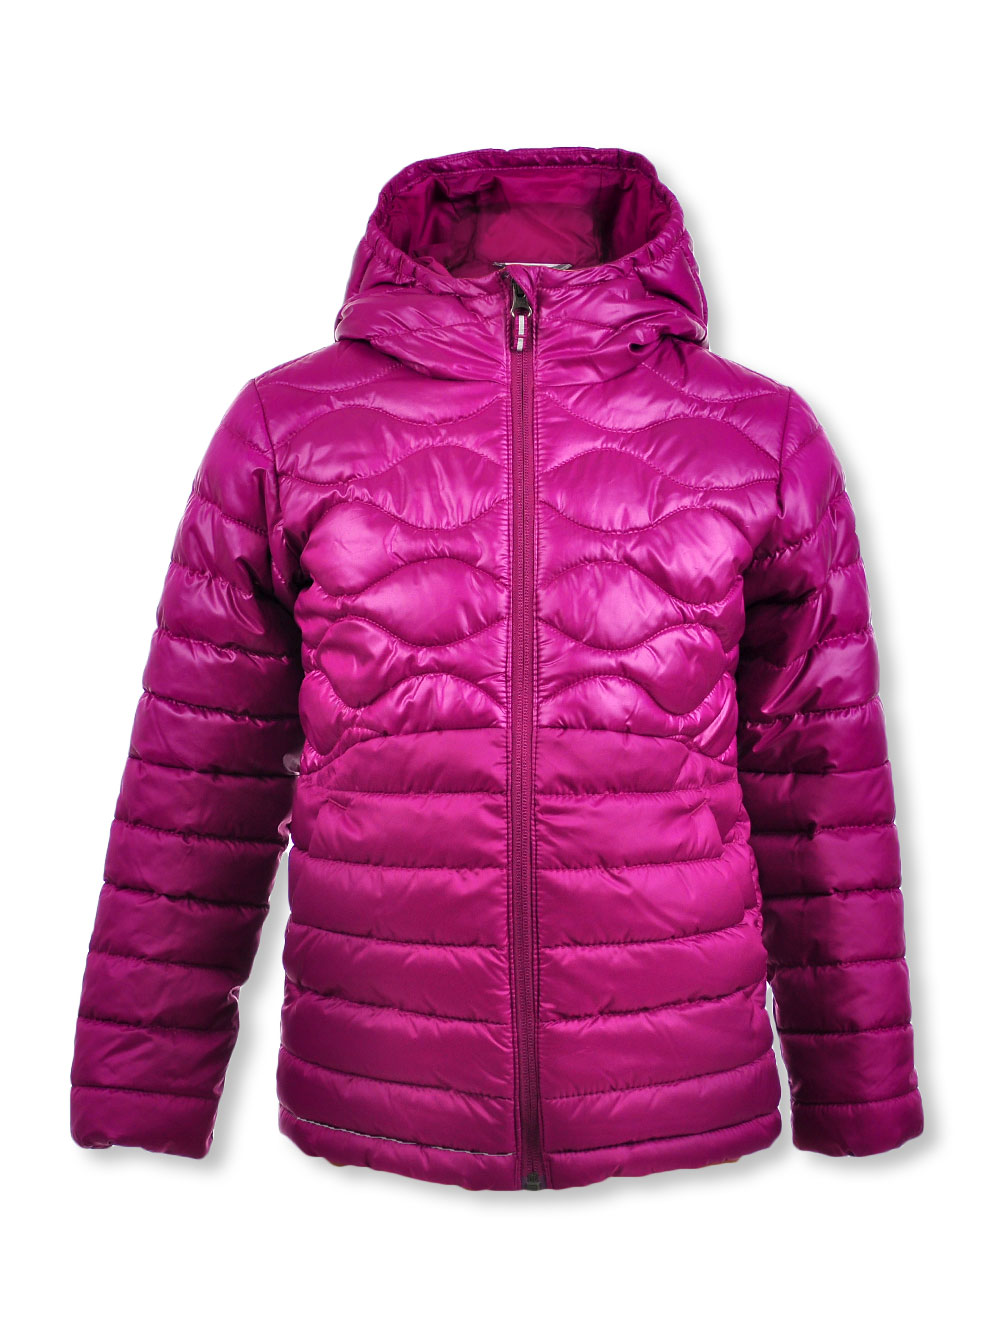 Size s7-8 Jackets Coats for Girls